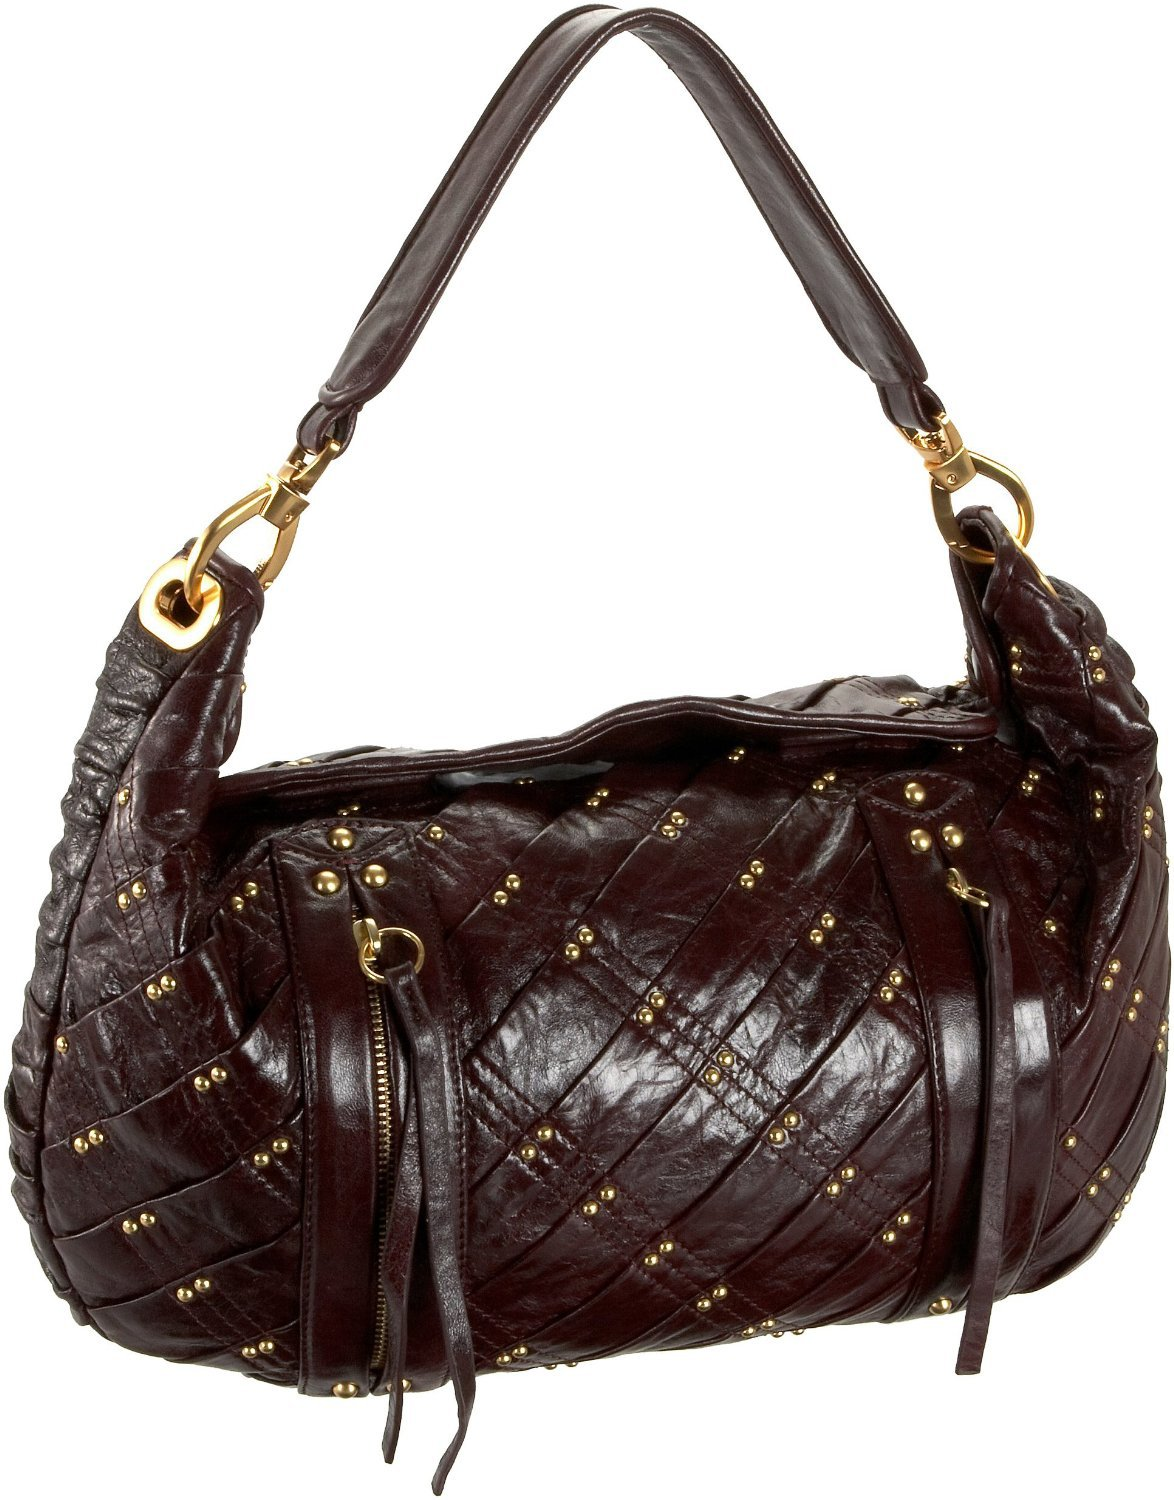 $595 -Treesje EXPOSED Mini Hobo  Bag -in Bordeaux NWT